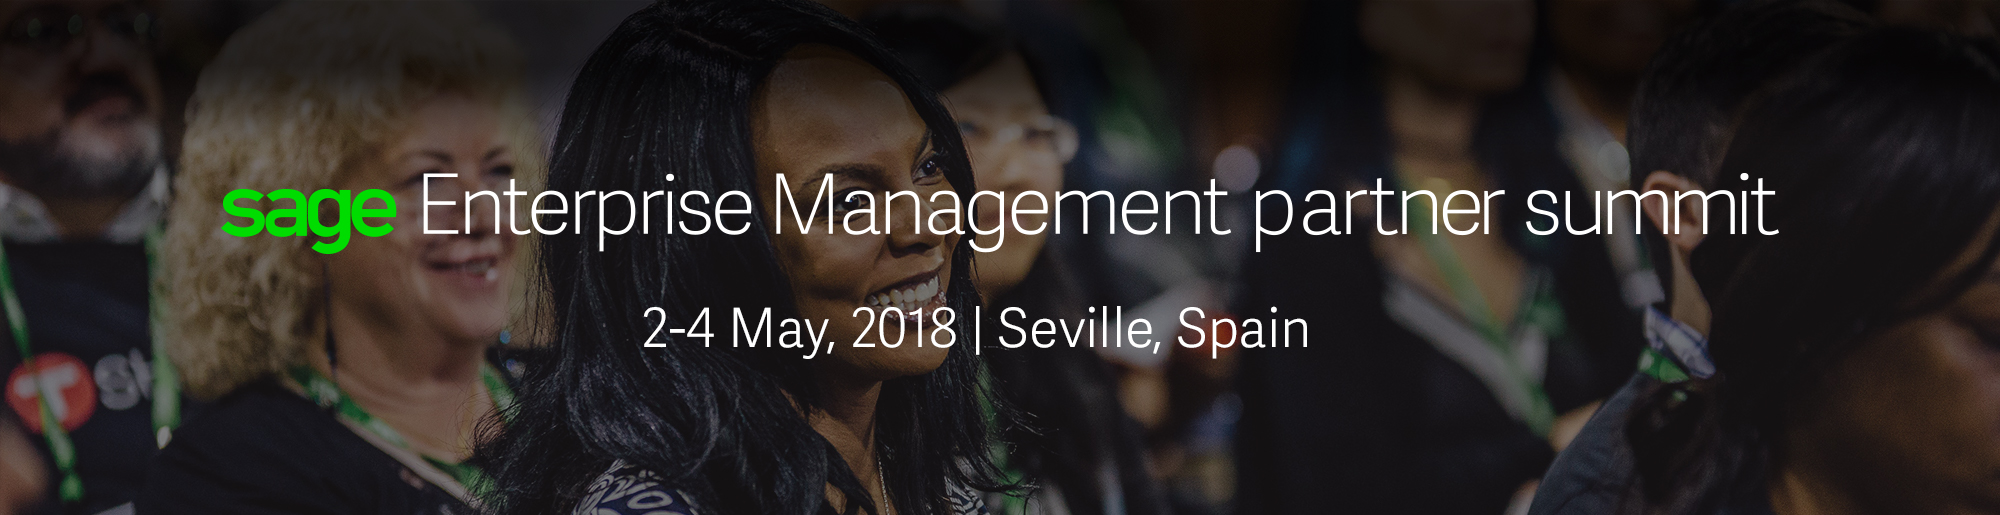 Sage Enterprise Management Partner Summit (2017)